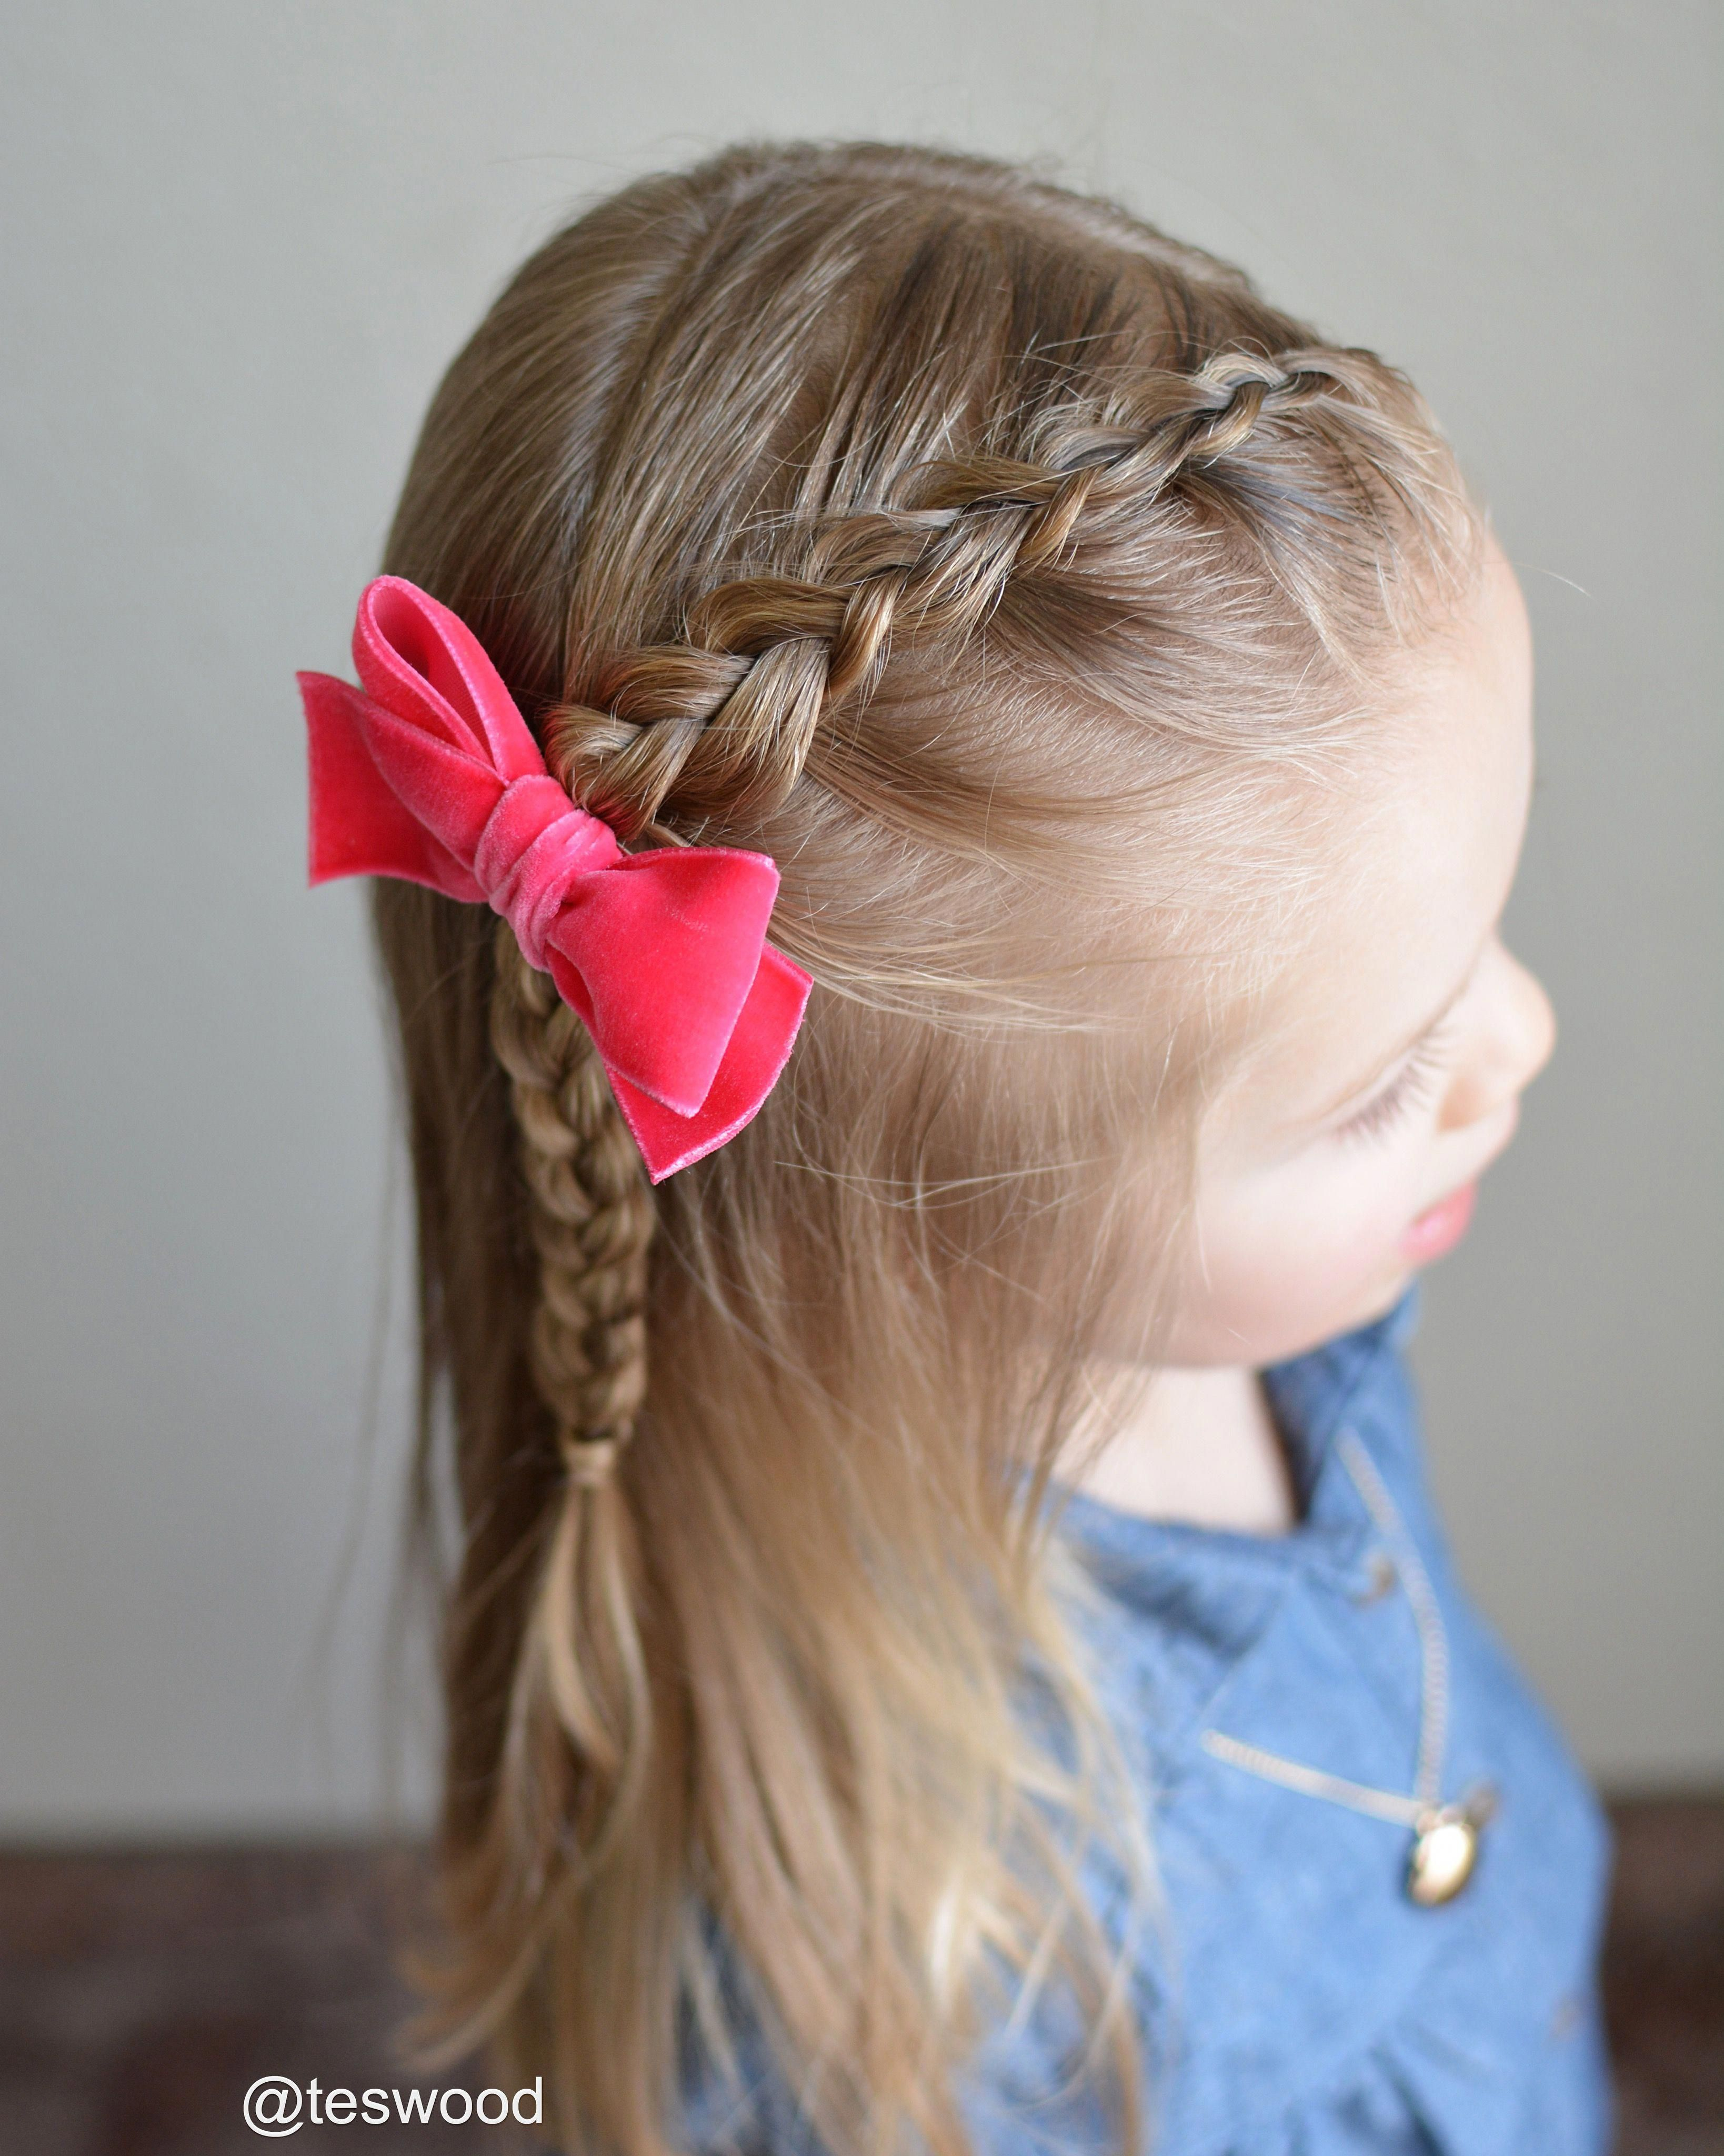 Haircut For Small Girls Birthday Hairstyles For Kids Girl Kids Hair Style 20190202 Birthday Hairstyles Kids Hairstyles Kids Hairstyles Girls